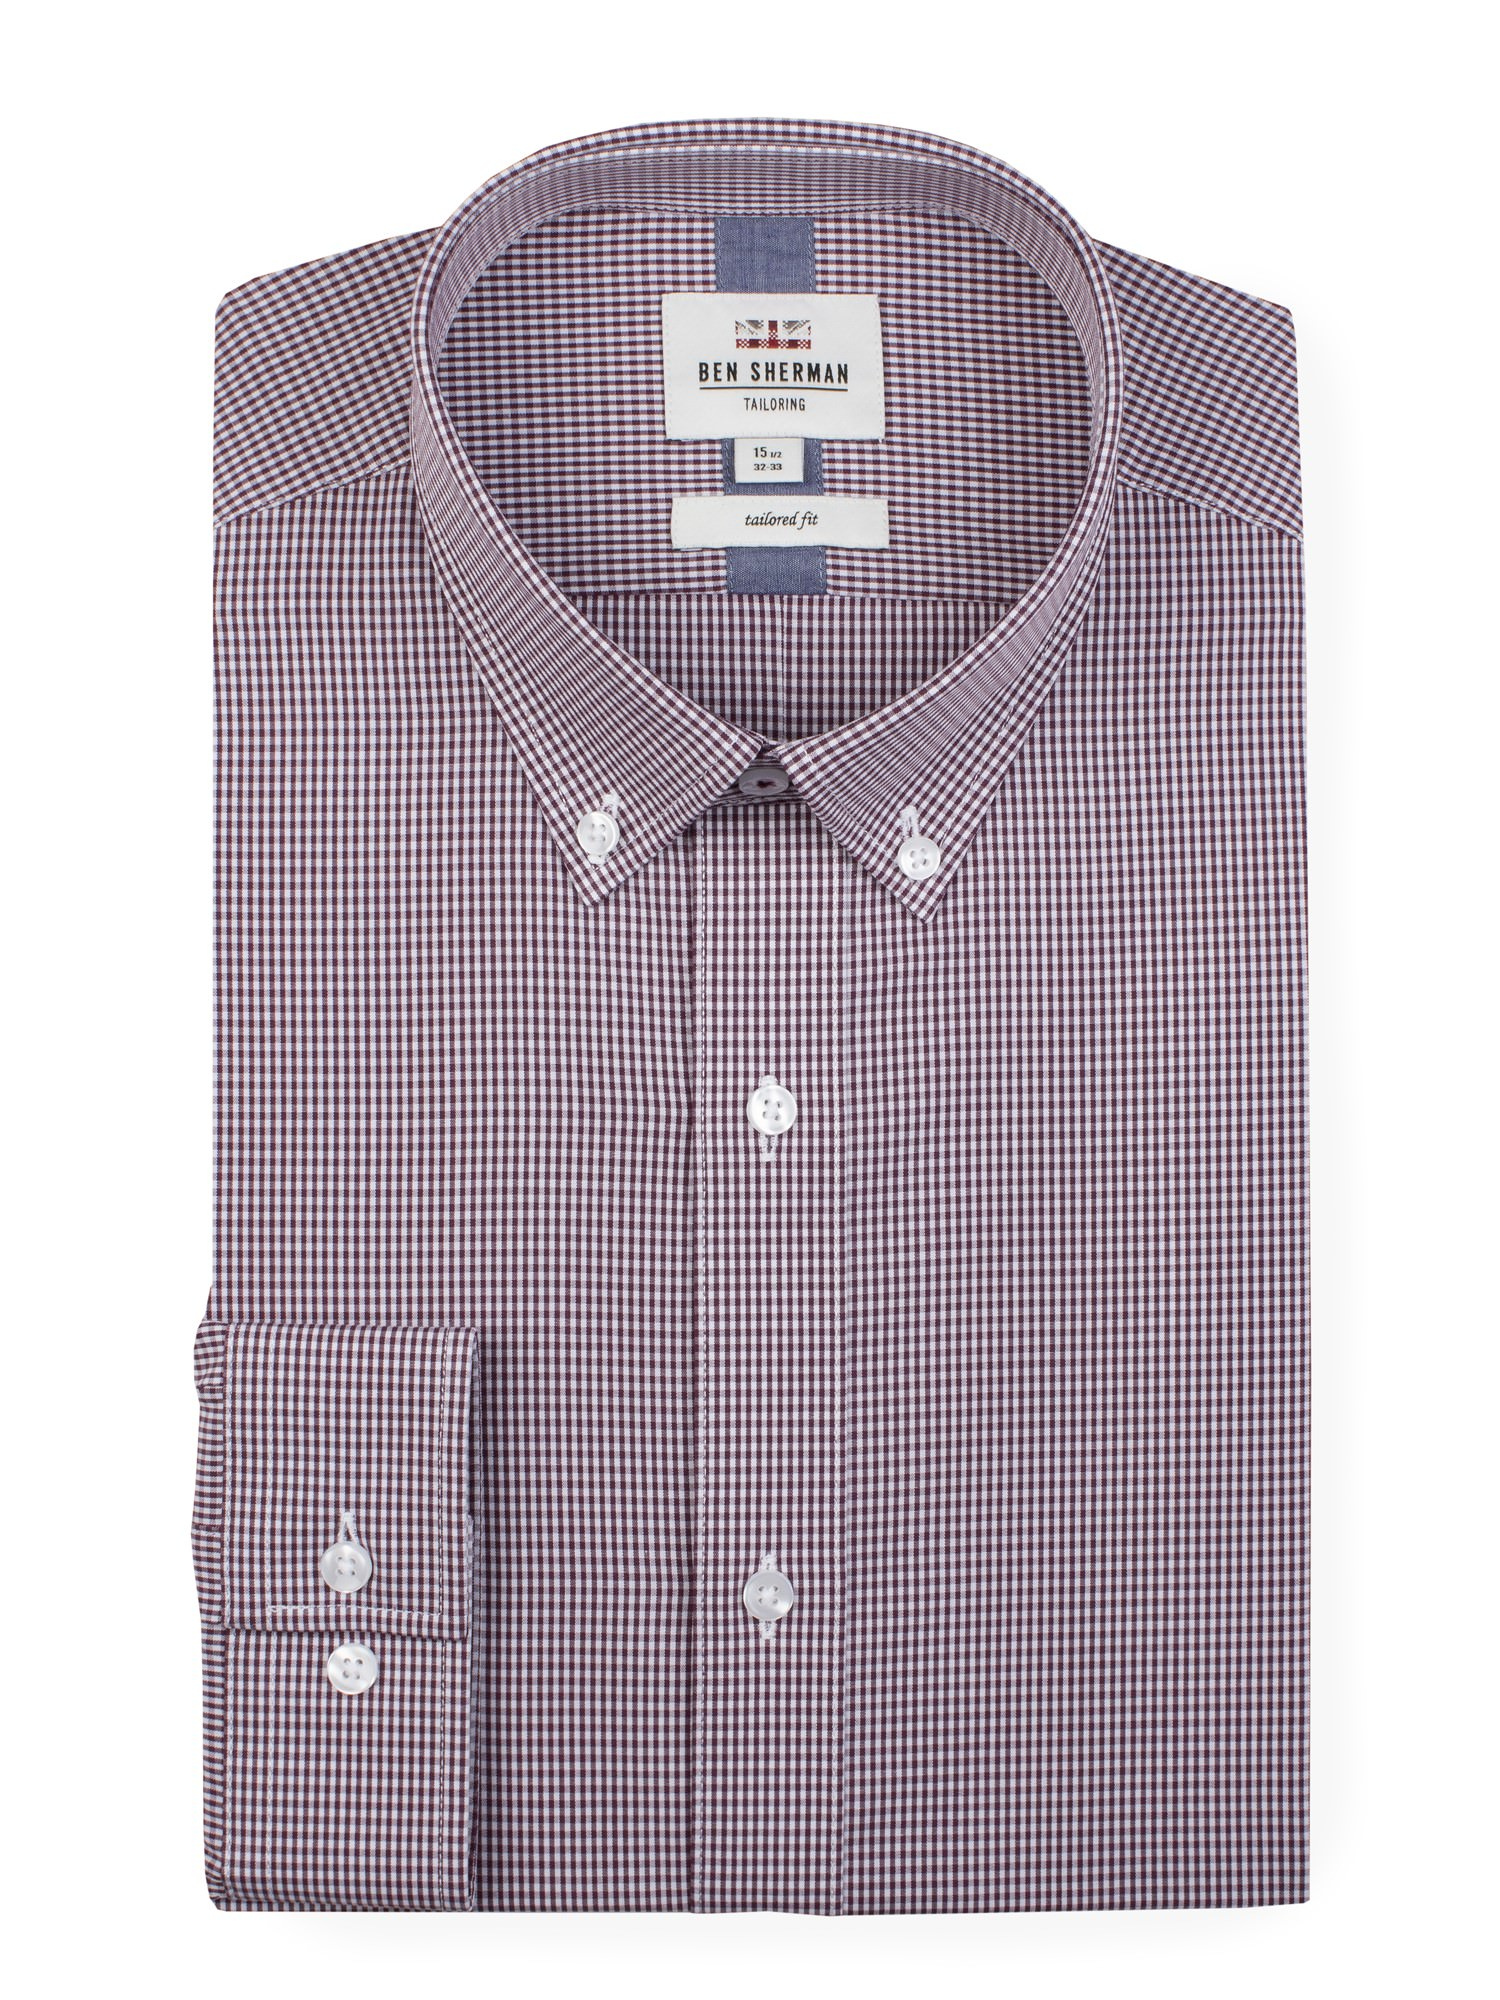 Ben Sherman Wine Long Sleeve Gingham Formal Shirt